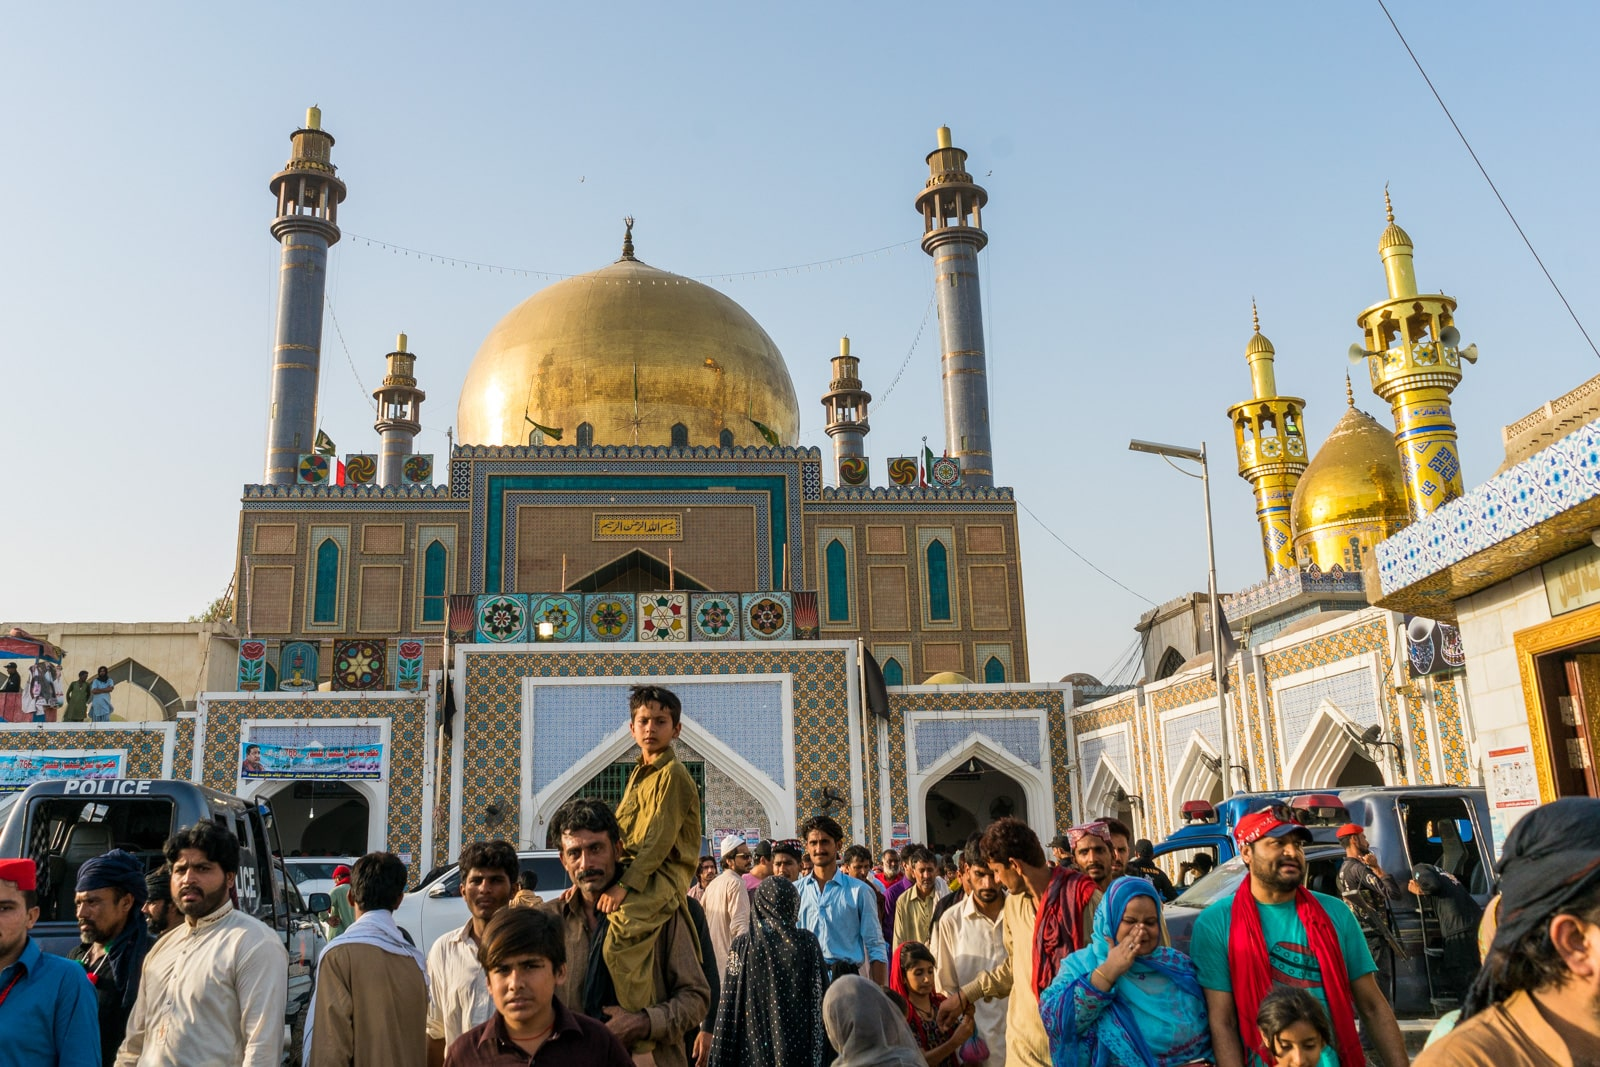 The Urs of Lal Shahbaz Qalandar in Sehwan, Pakistan - Exterior of shrine of Lal Shahbaz - Lost With Purpose travel blog